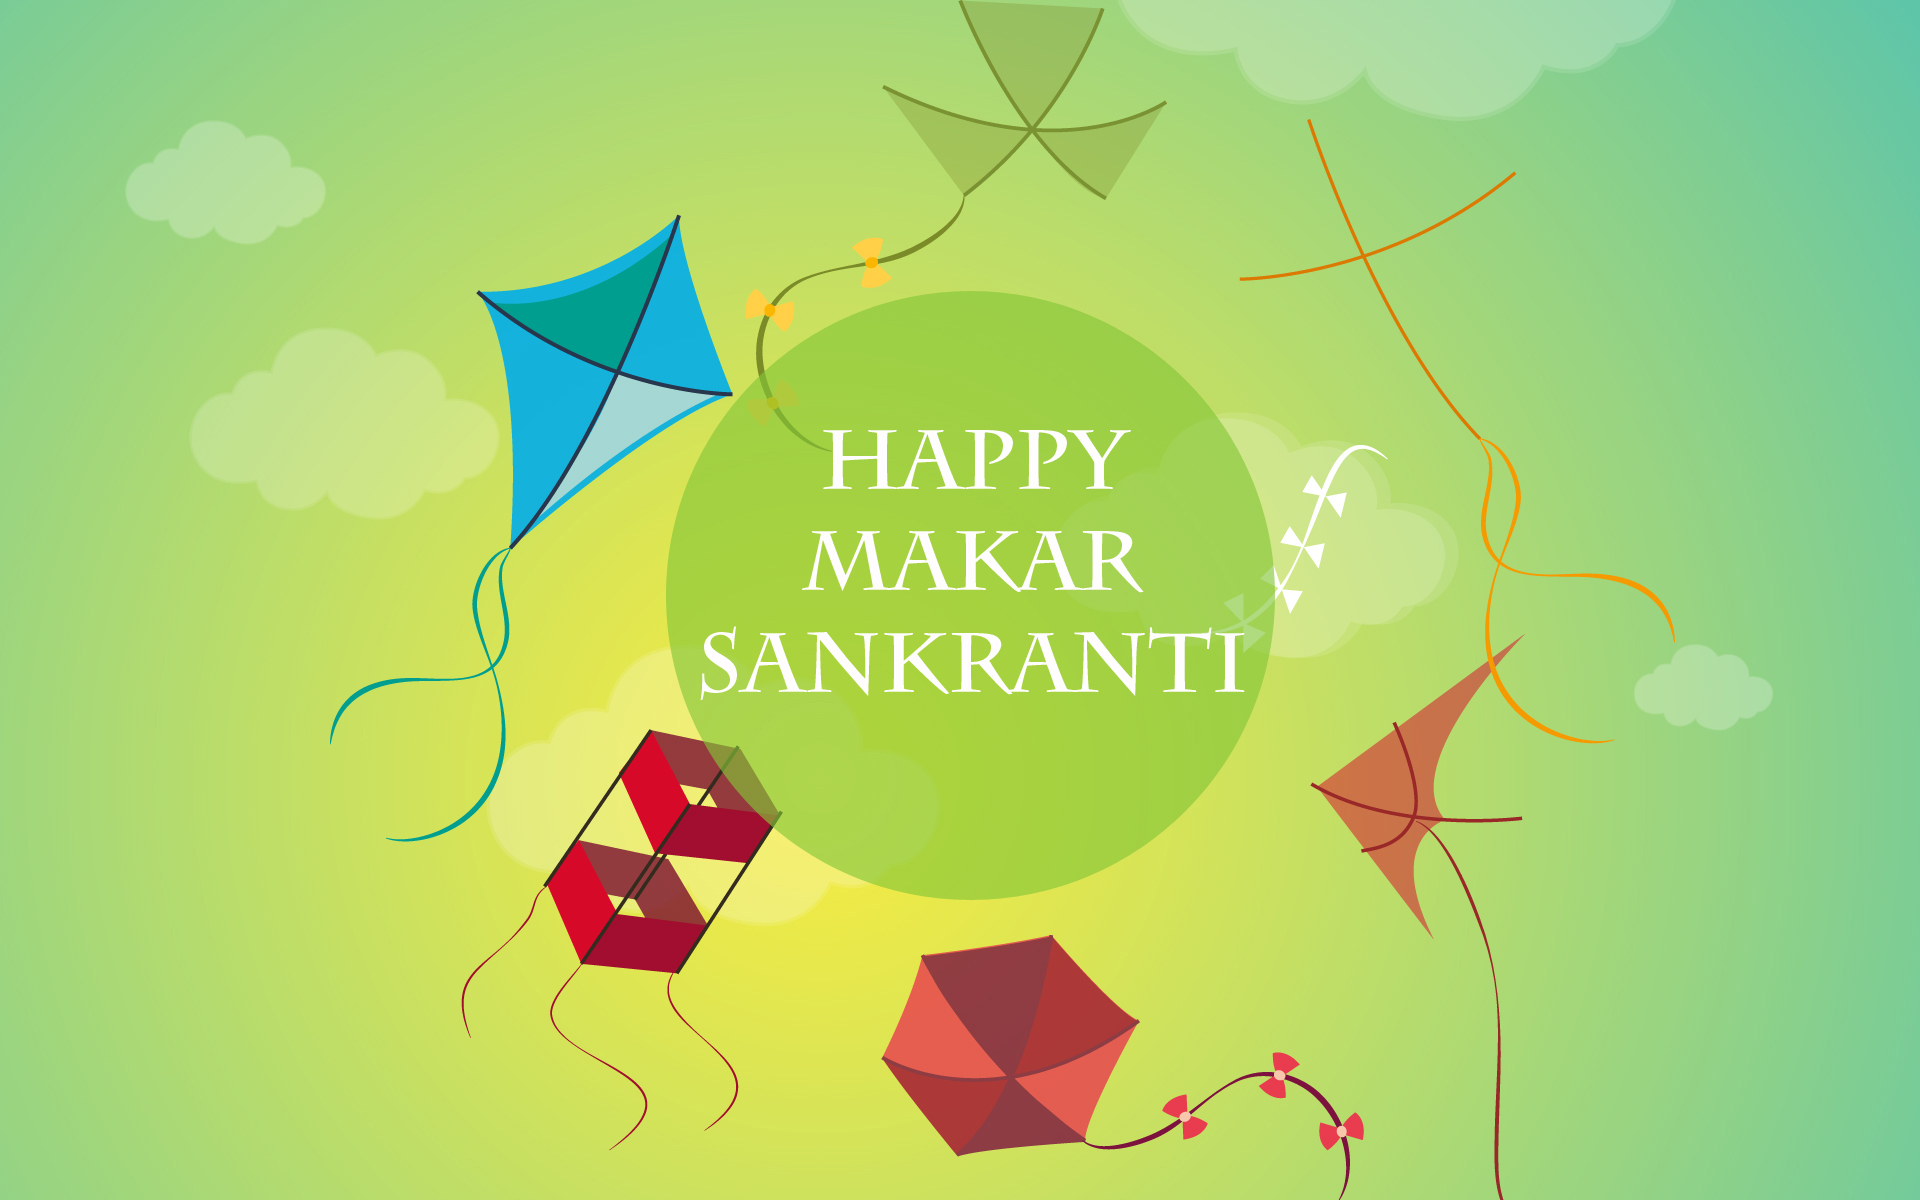 Happy Makar Sankranti 2018 Picture For WhatsApp